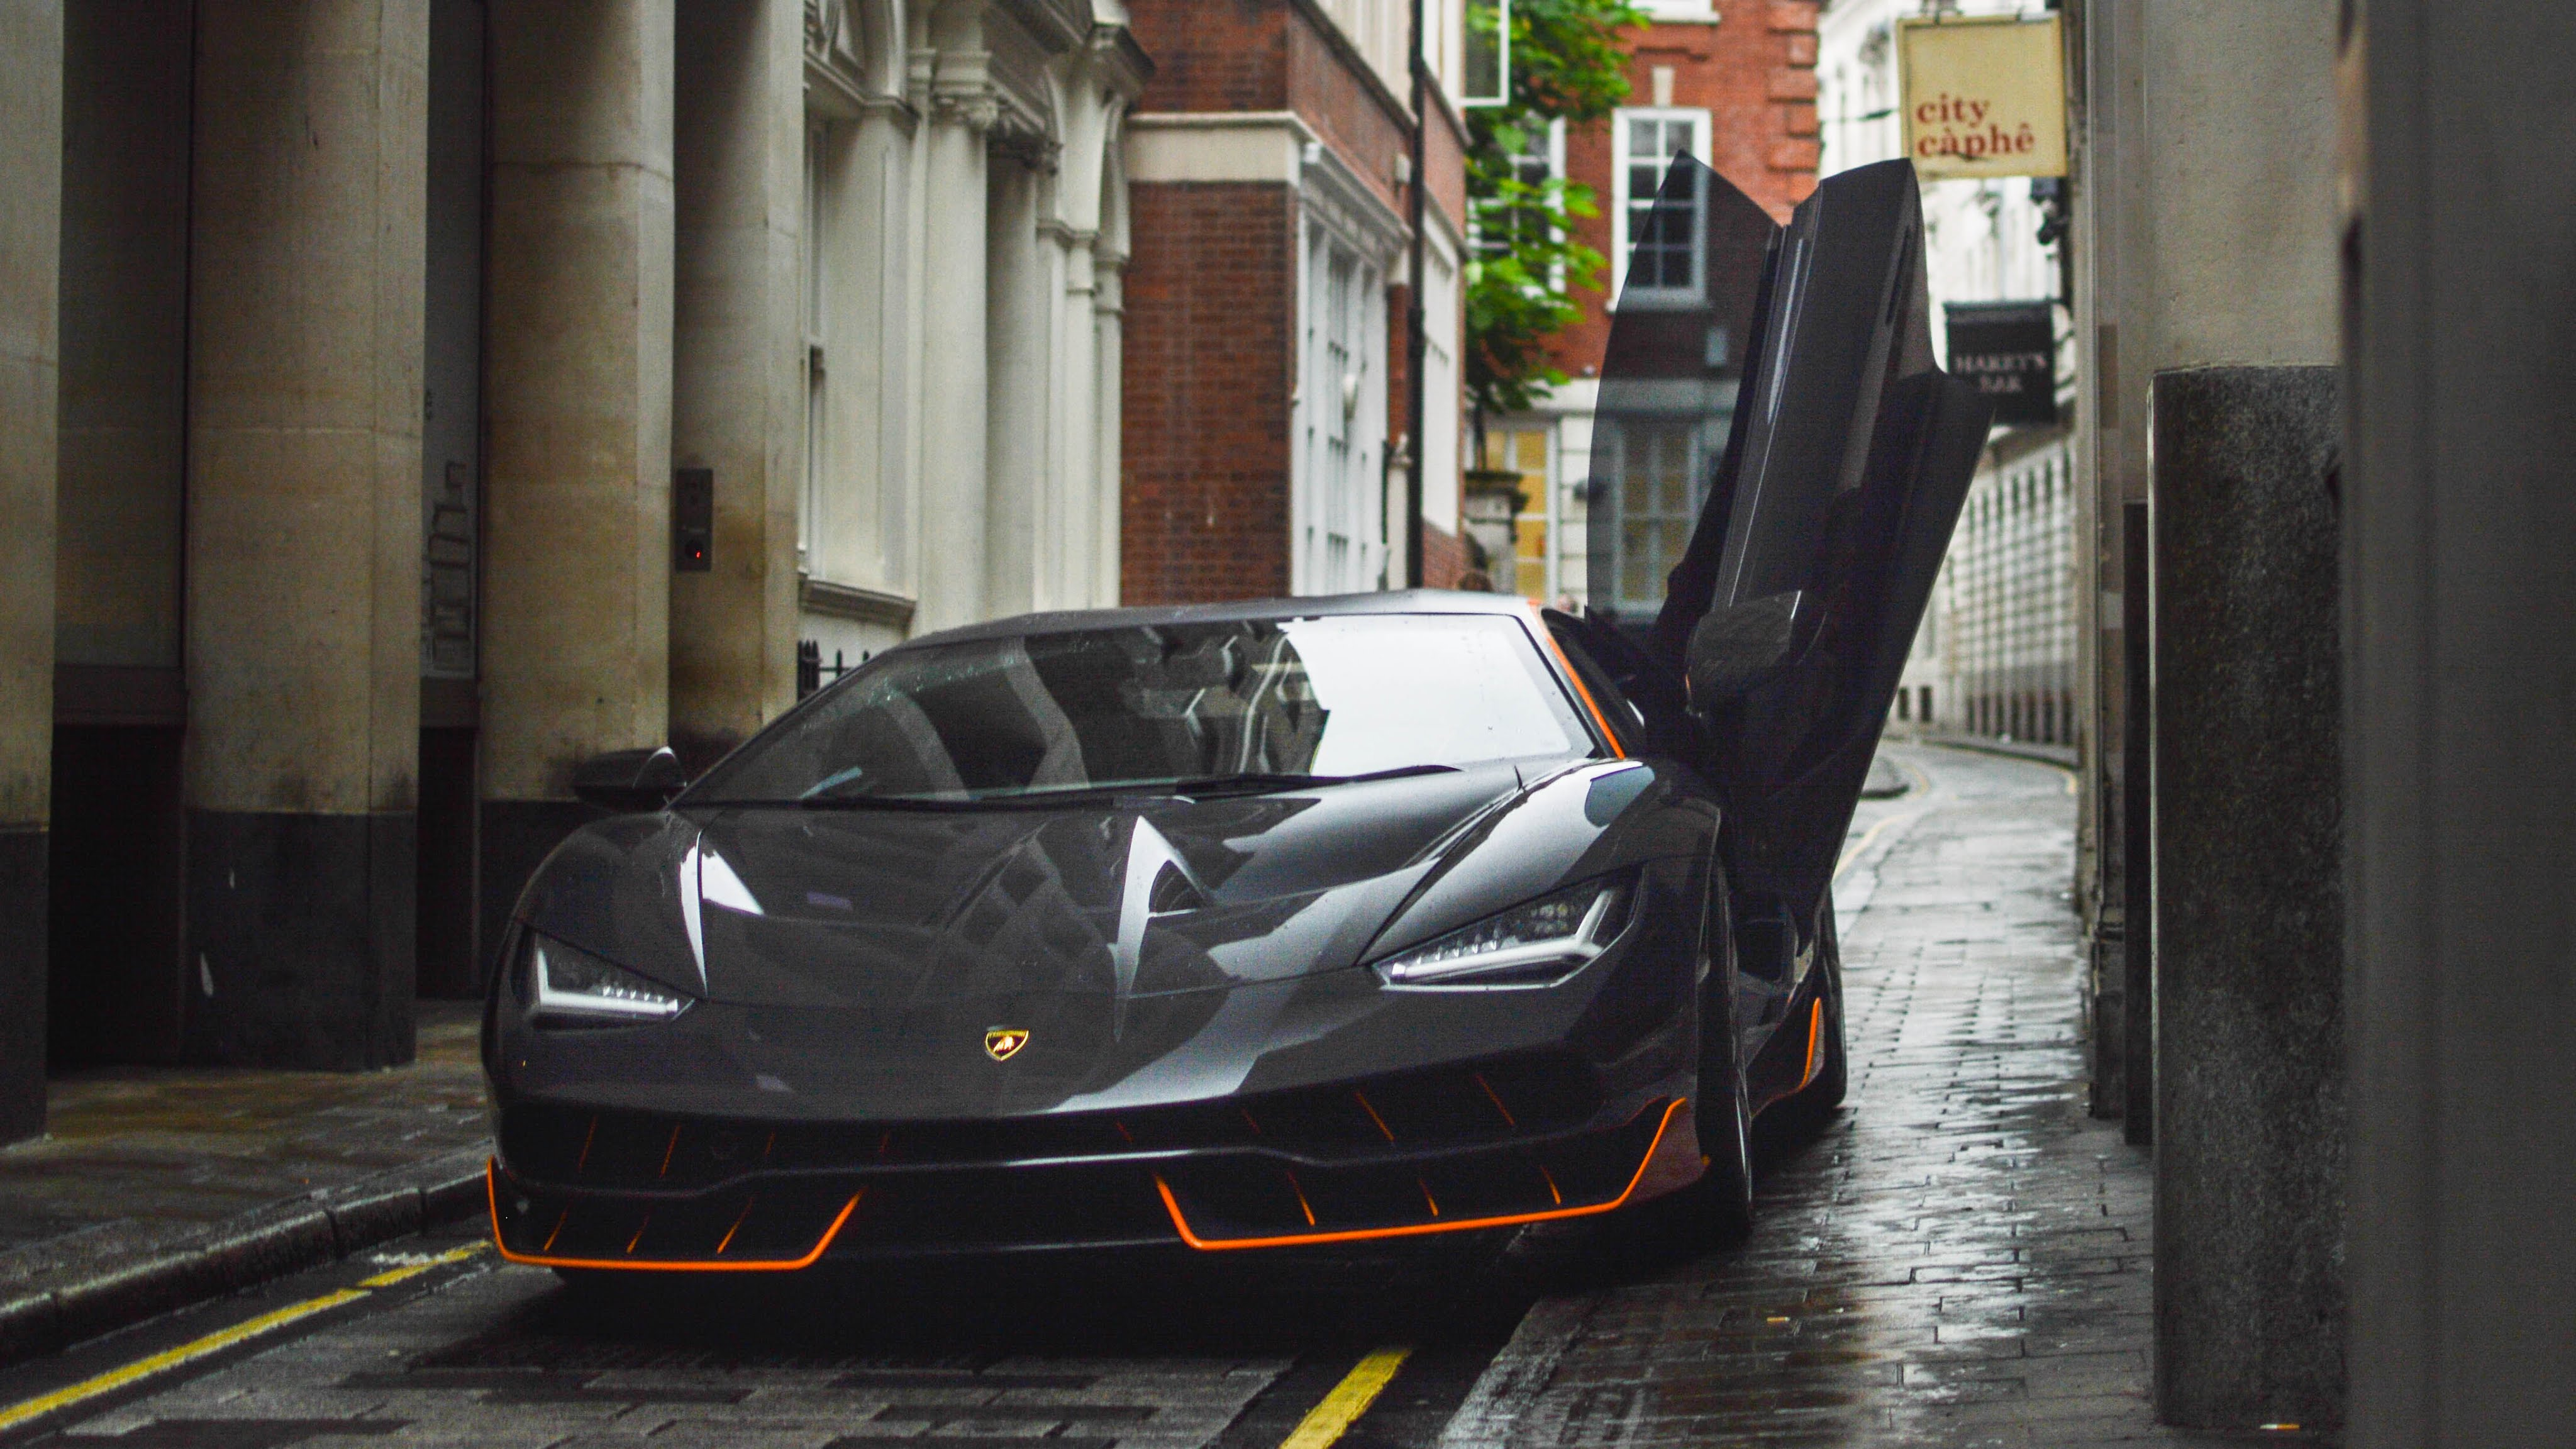 Lamborghini Centenario Spotted On Transformers 5 Movie Set In London